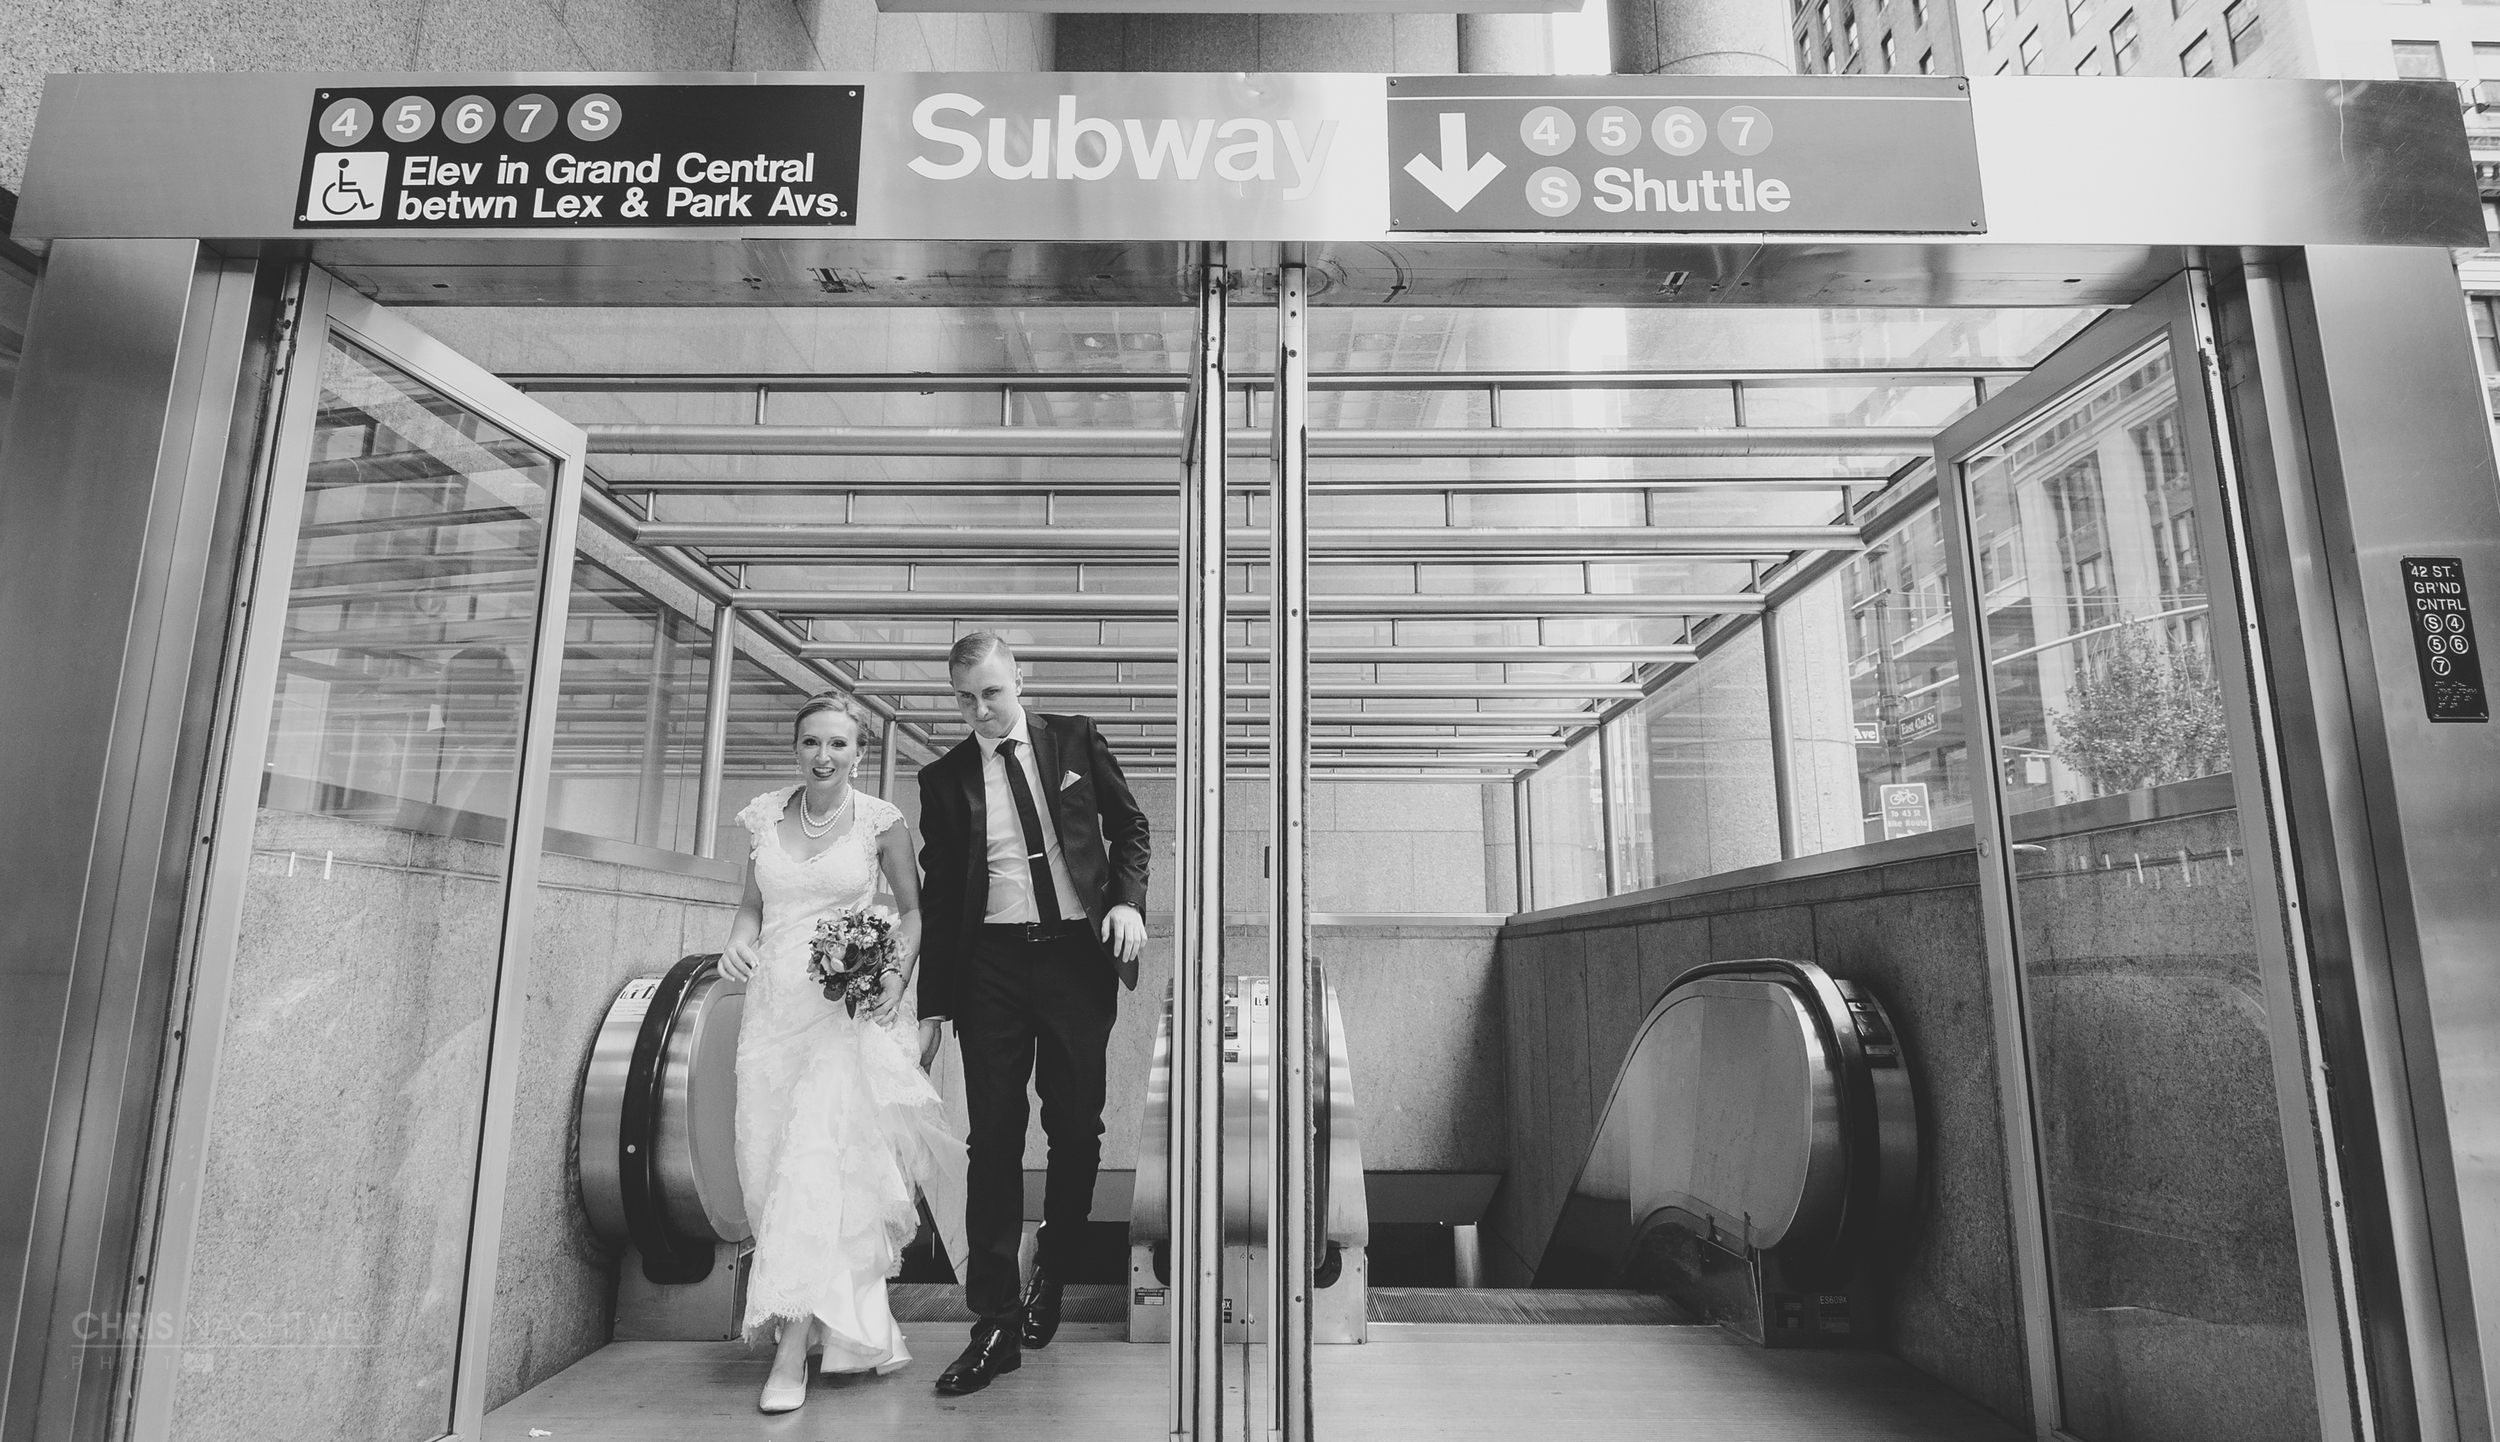 nyc-subway-wedding-photos-chris-nachtwey.jpg